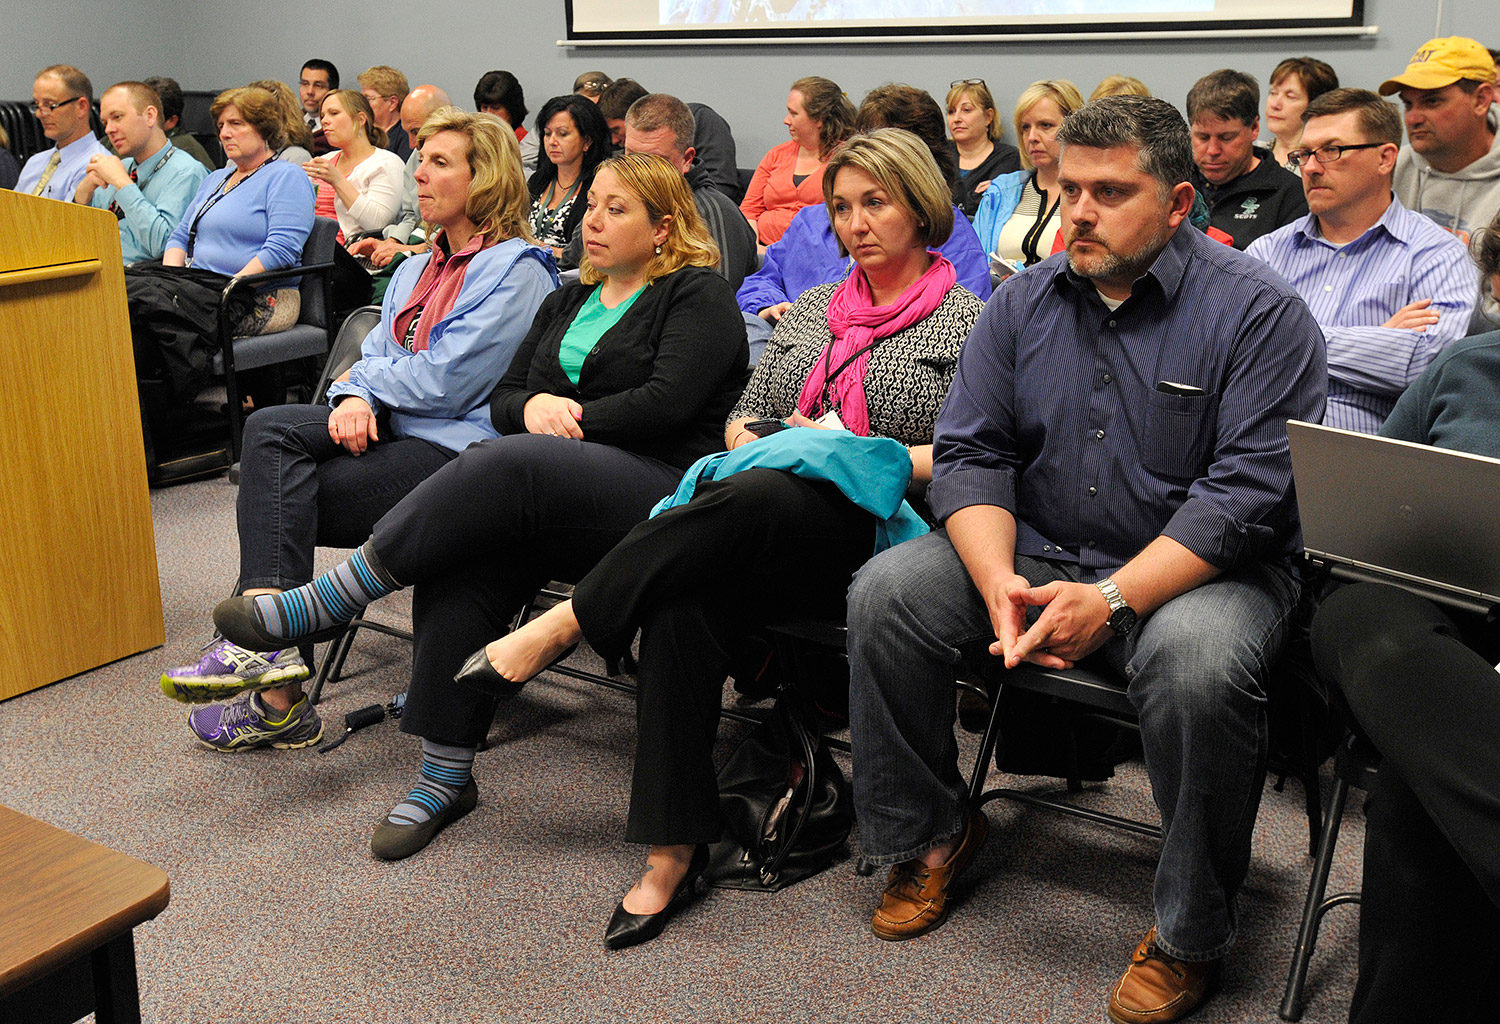 A crowd turned out for Monday night's meeting of the SAD 6 school board. A petition presented to the board calls for it to consider ending Superintendent Frank Sherburne's contract.